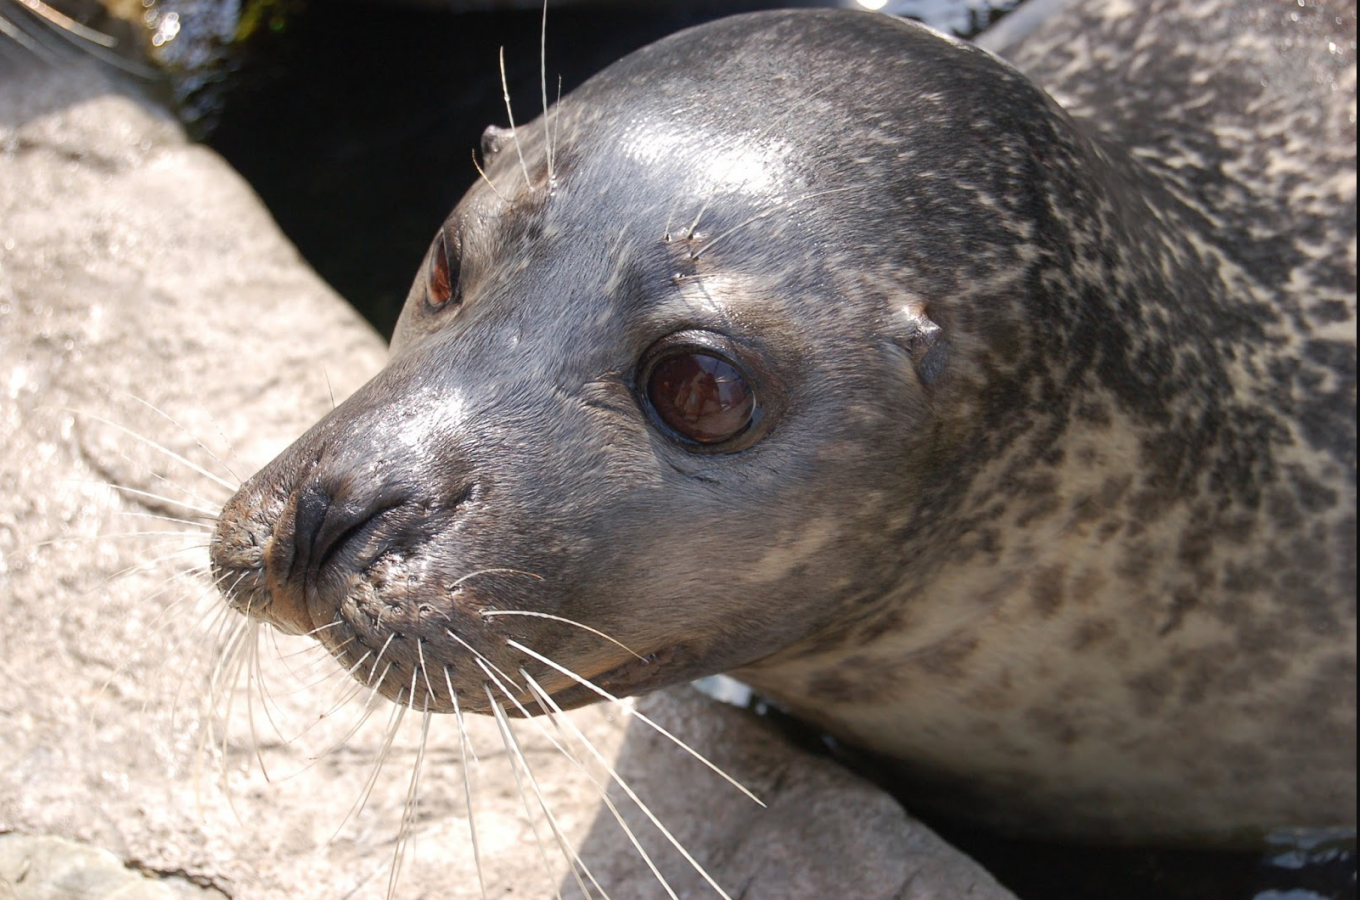 Reggae the harbor seal